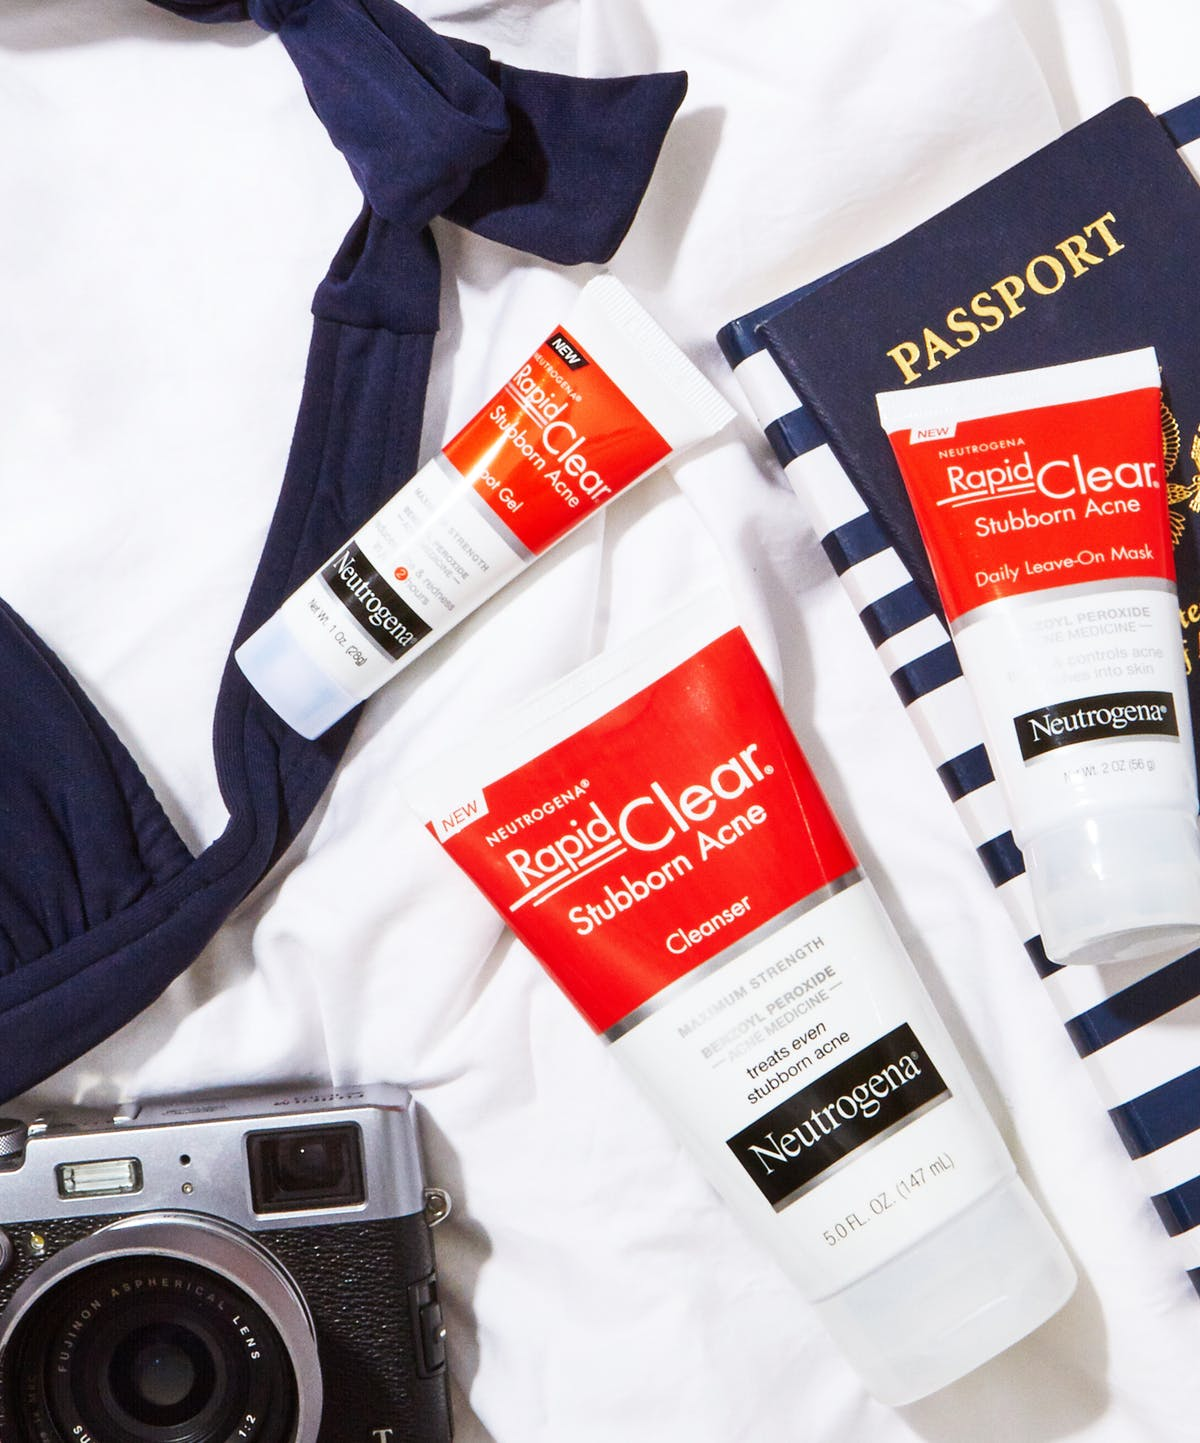 best-drugstore-acne-products-main